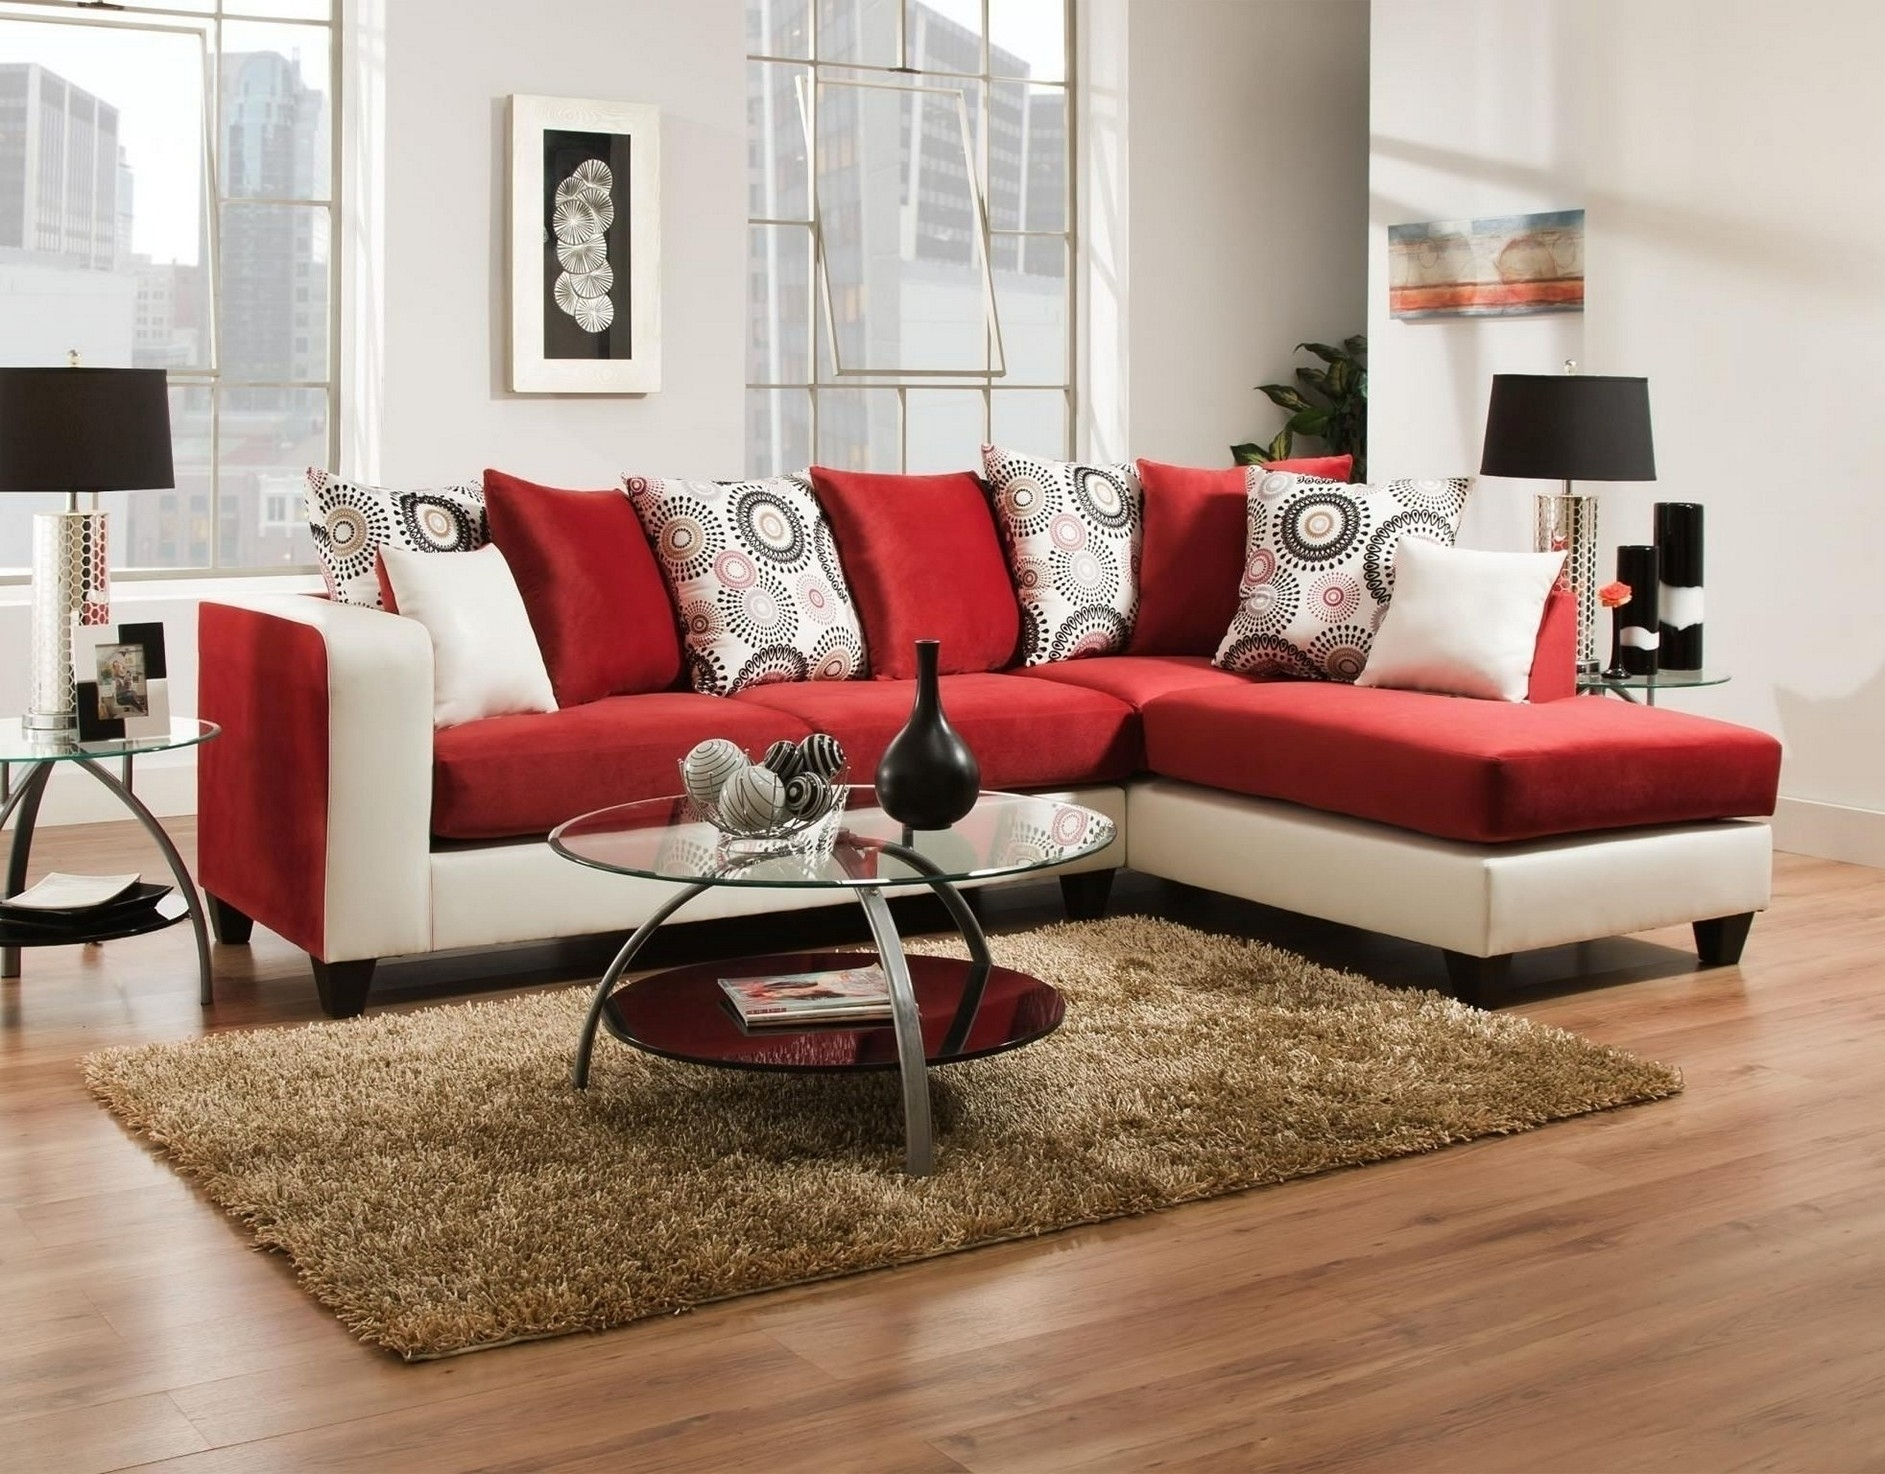 Chairs : Cheaptional Sofas Chairs Gallery Image And Wallpaper Under Intended For Sectional Sofas Under  (Image 1 of 10)